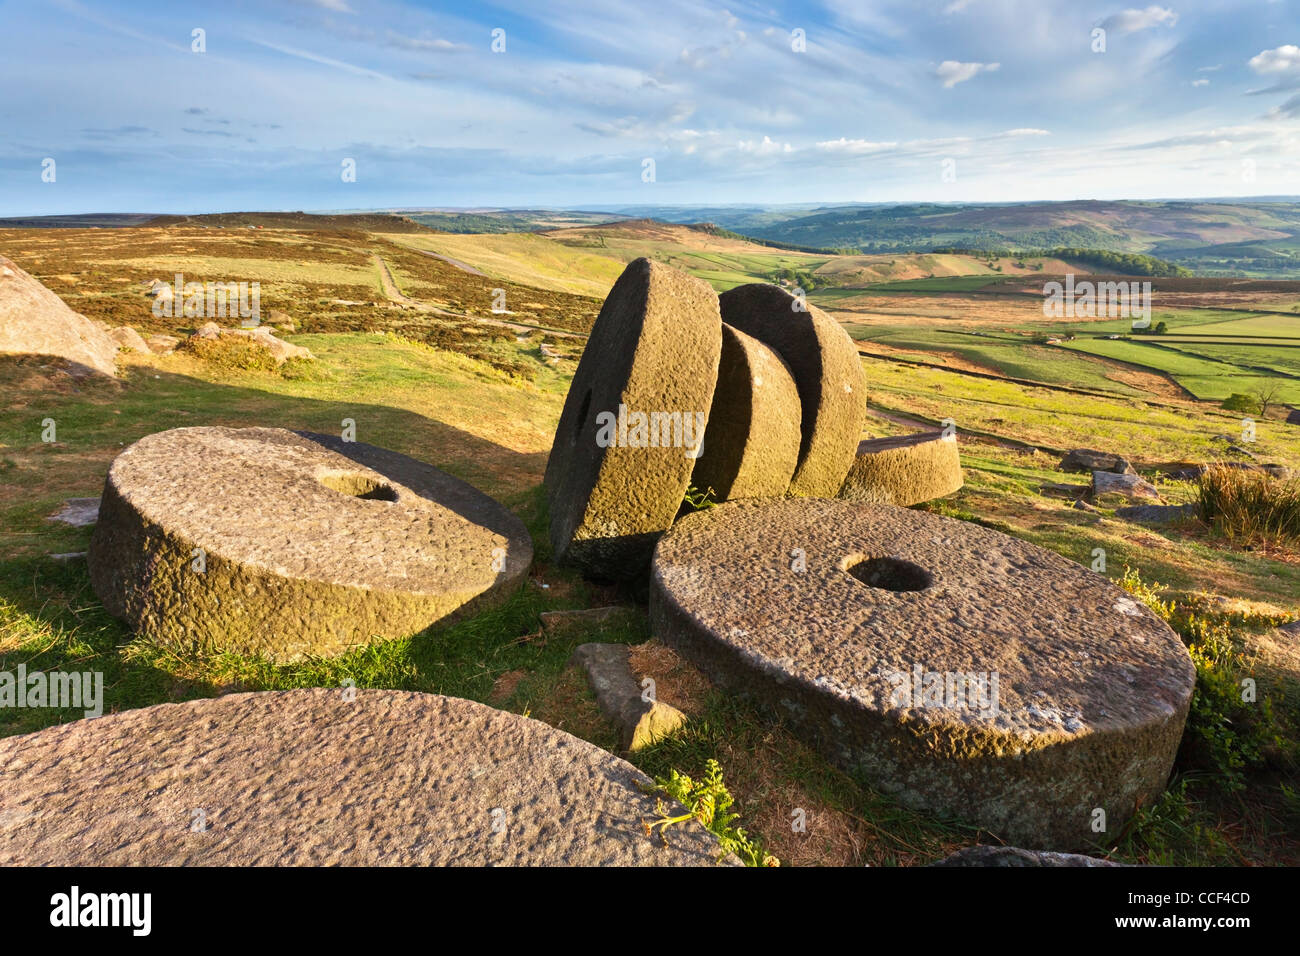 Millstones on Stanage Edge in the Peak District National Park. with the Hope Valley in the distance - Stock Image